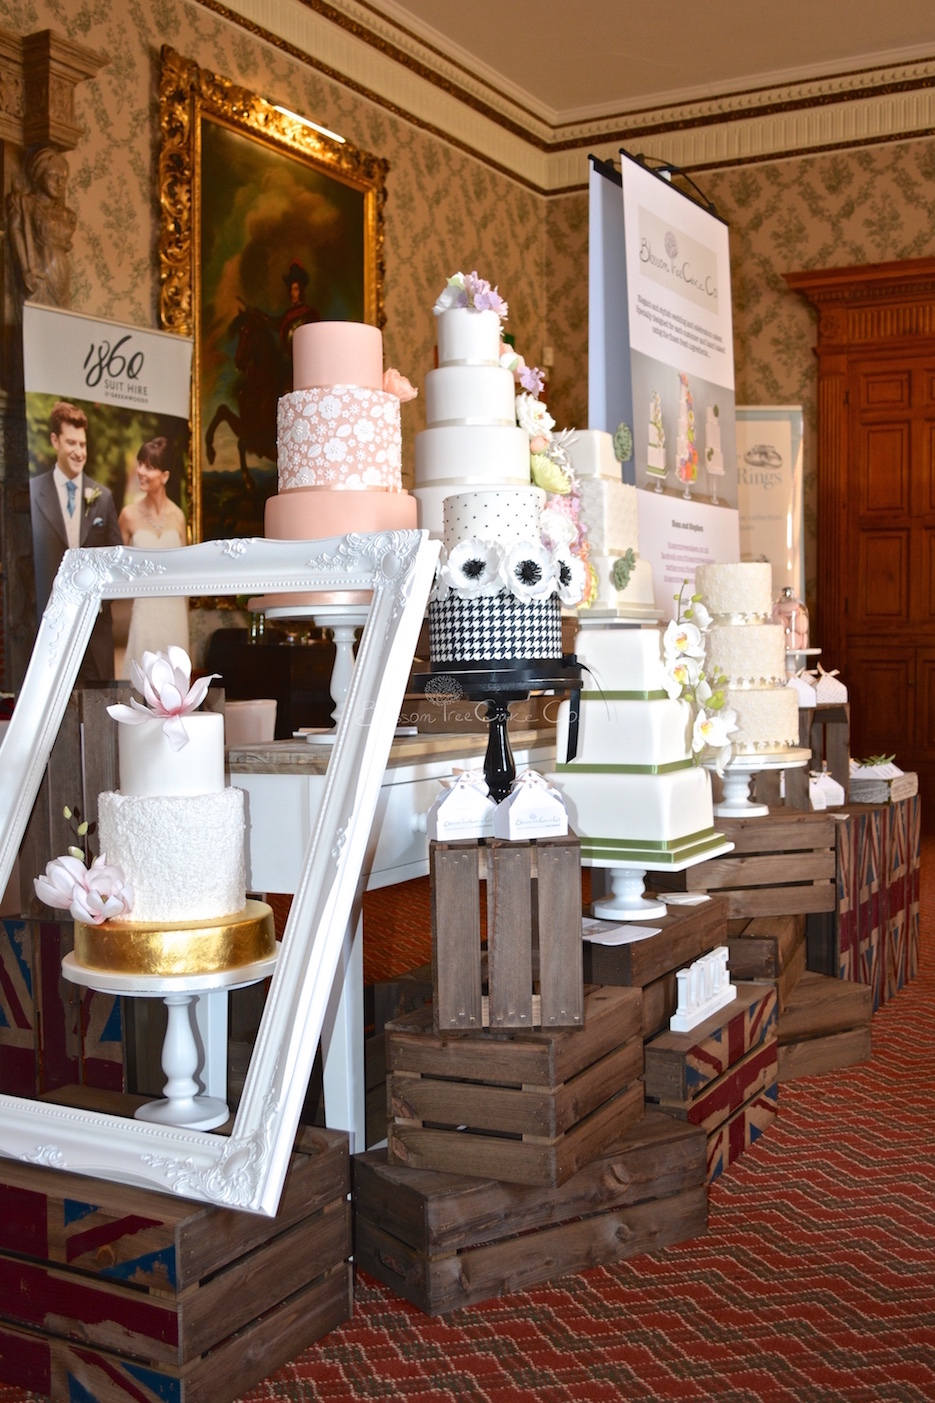 Blossom Tree Cake Co at Goldsborough Hall wedding fair March 2015.jpg